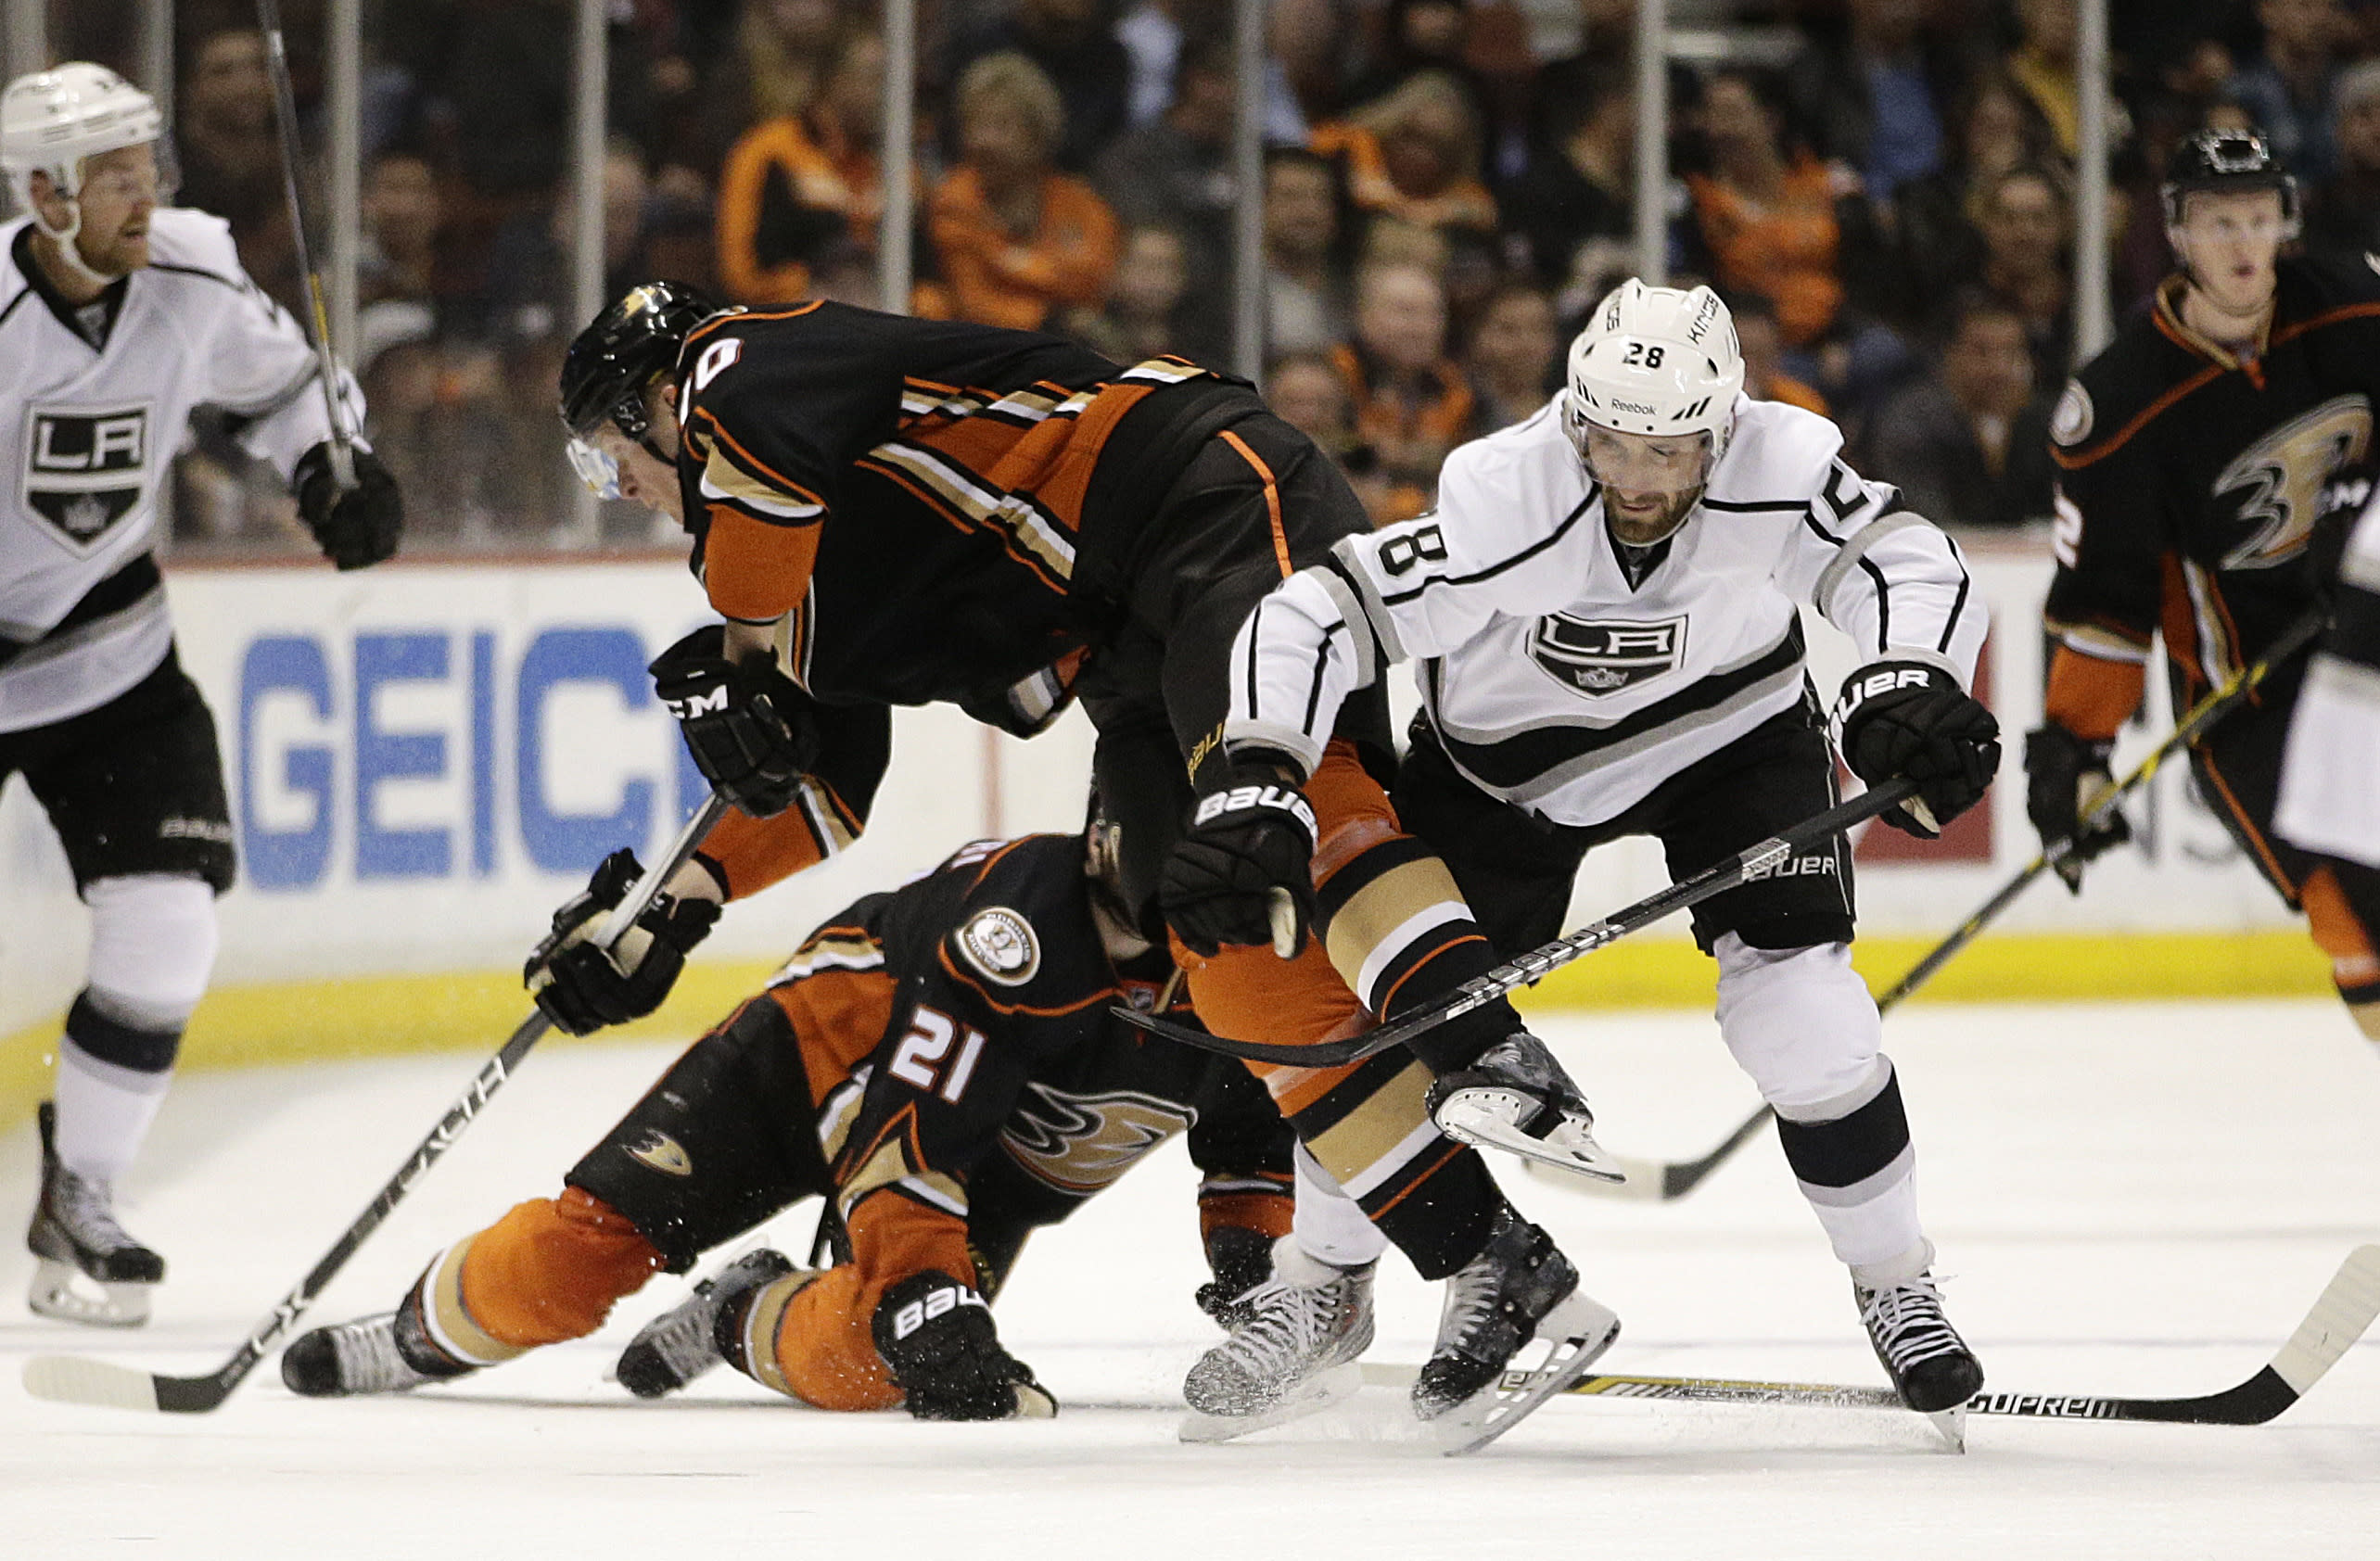 Perry's tiebreaker propels Anaheim Ducks past LA Kings 4-2